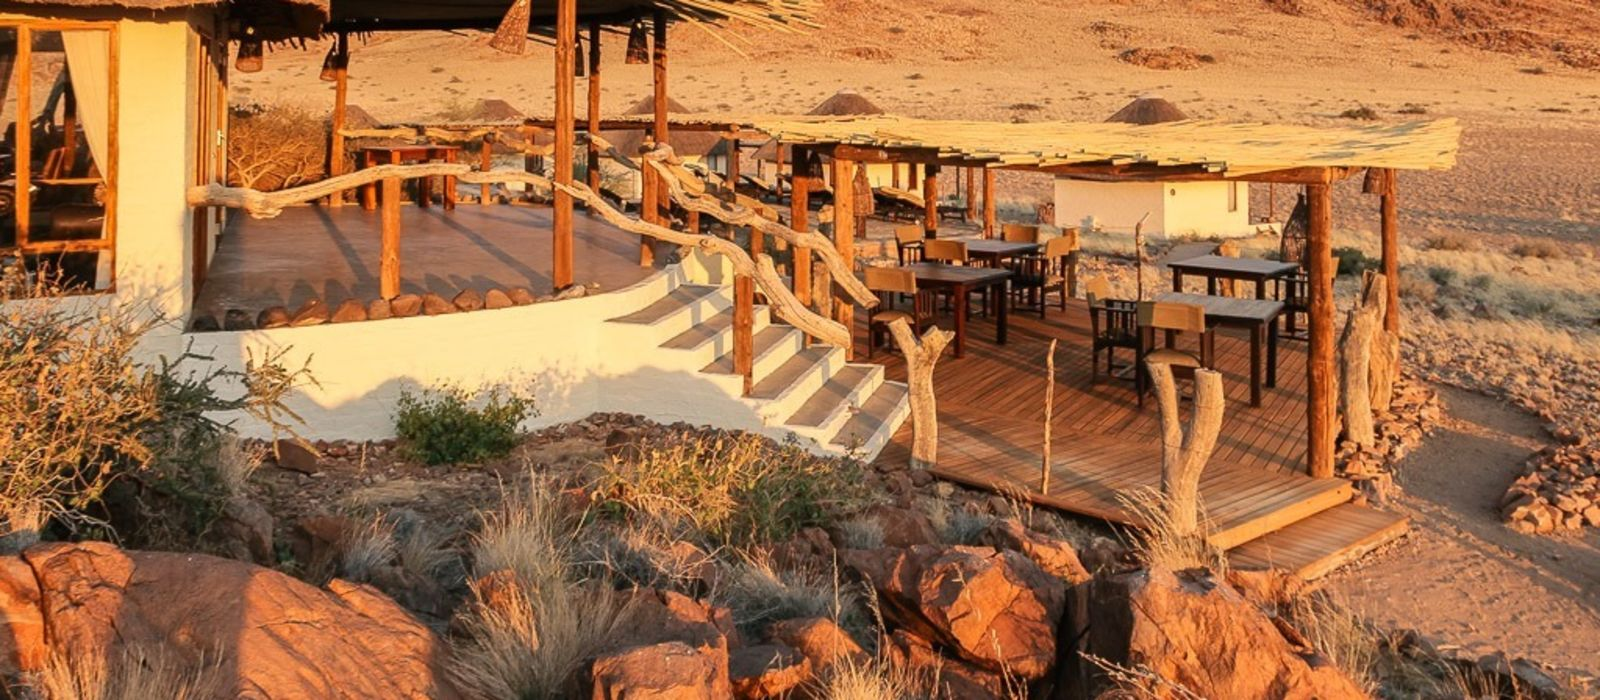 Hotel Desert Homestead Lodge Namibia